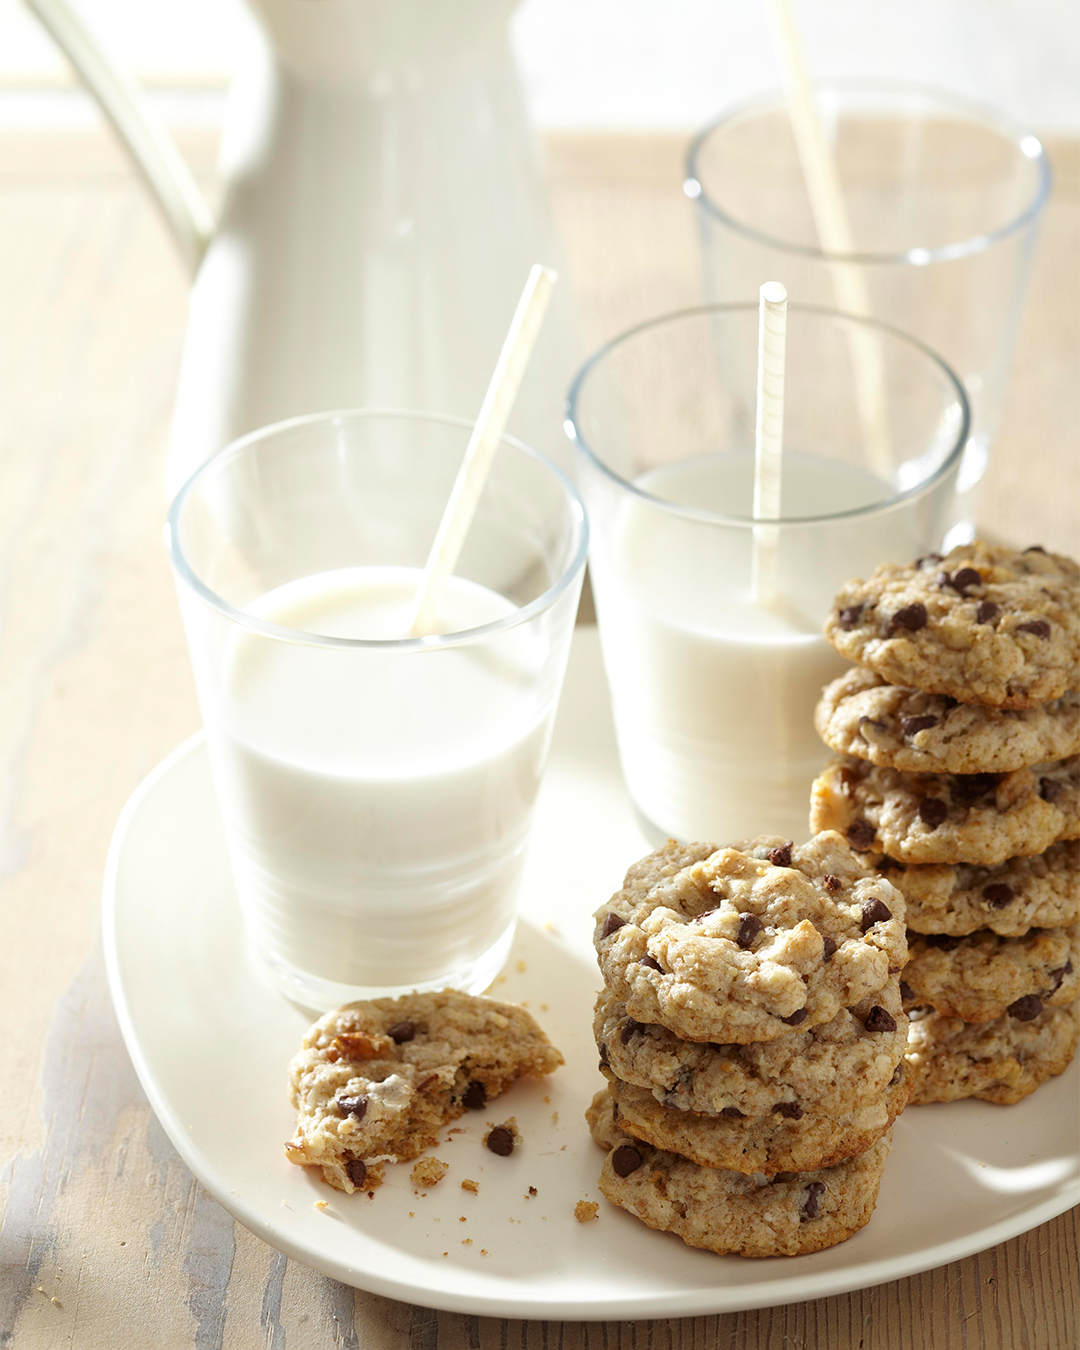 Whole Grain Chocolate Chip Cookies in stacks with milk